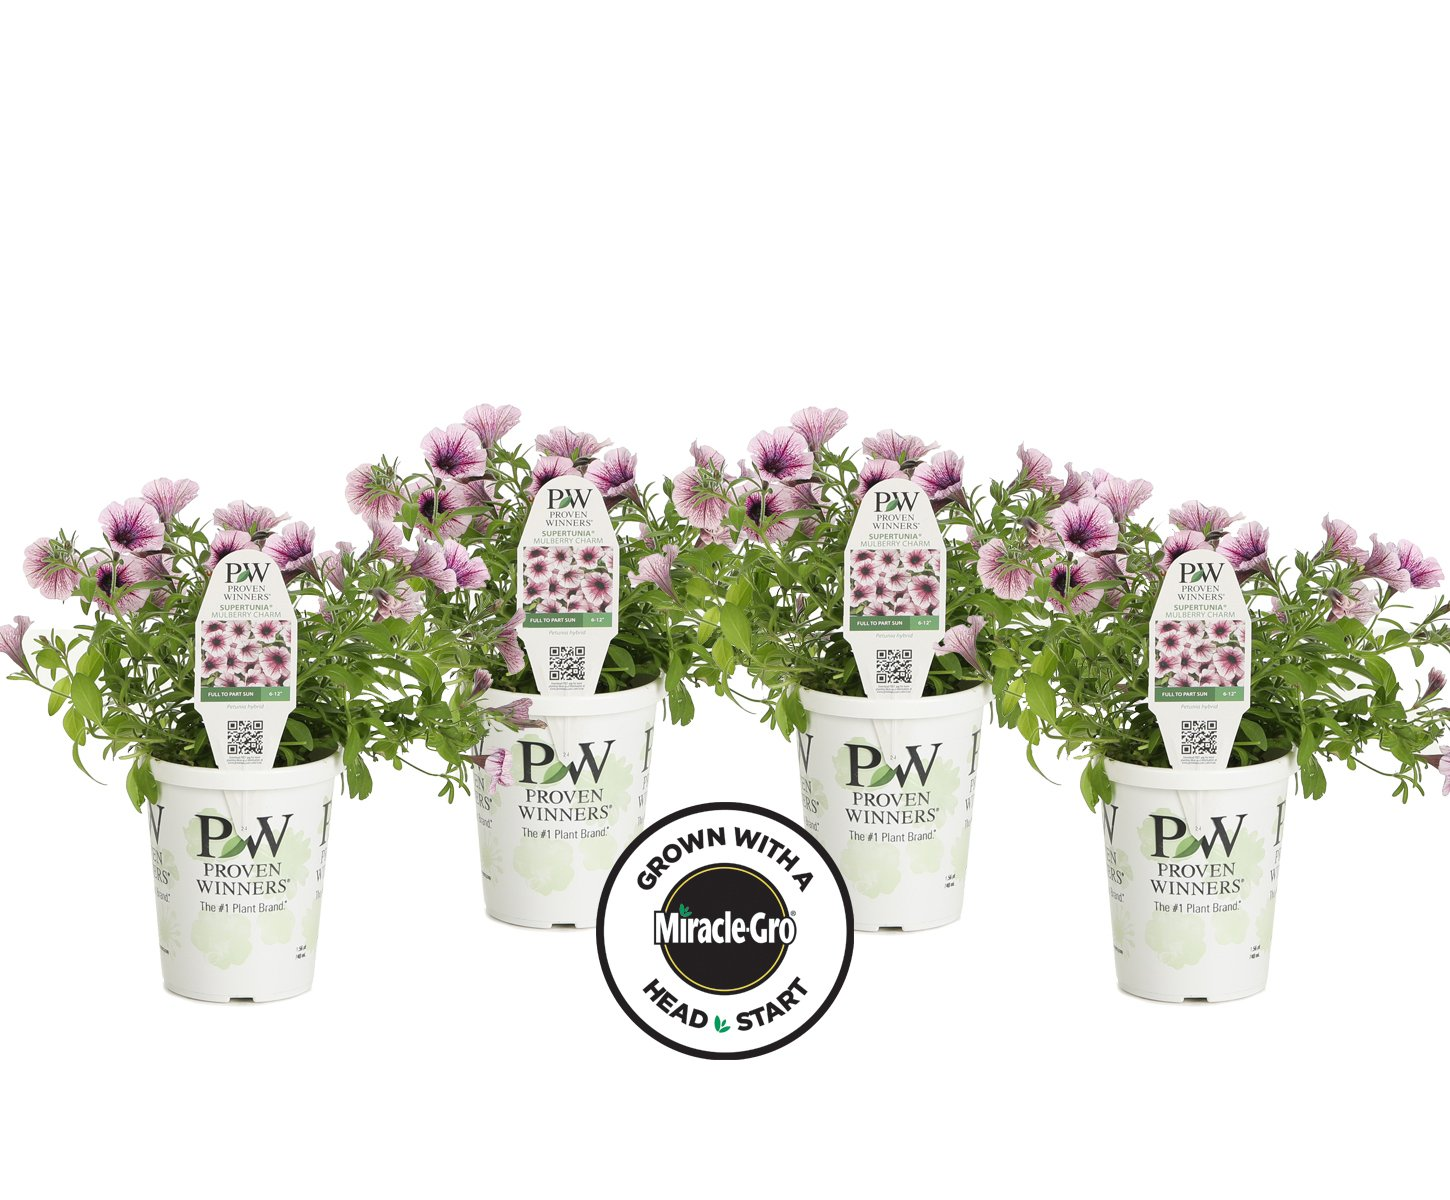 4-pack Proven Winners Supertunia Mulberry Charm Grown with Miracle-Gro Head Start Fertilizer (Petunia) Live Plant, Light Pink Flowers with Dark Pink Veins, 4.25 in. Grande